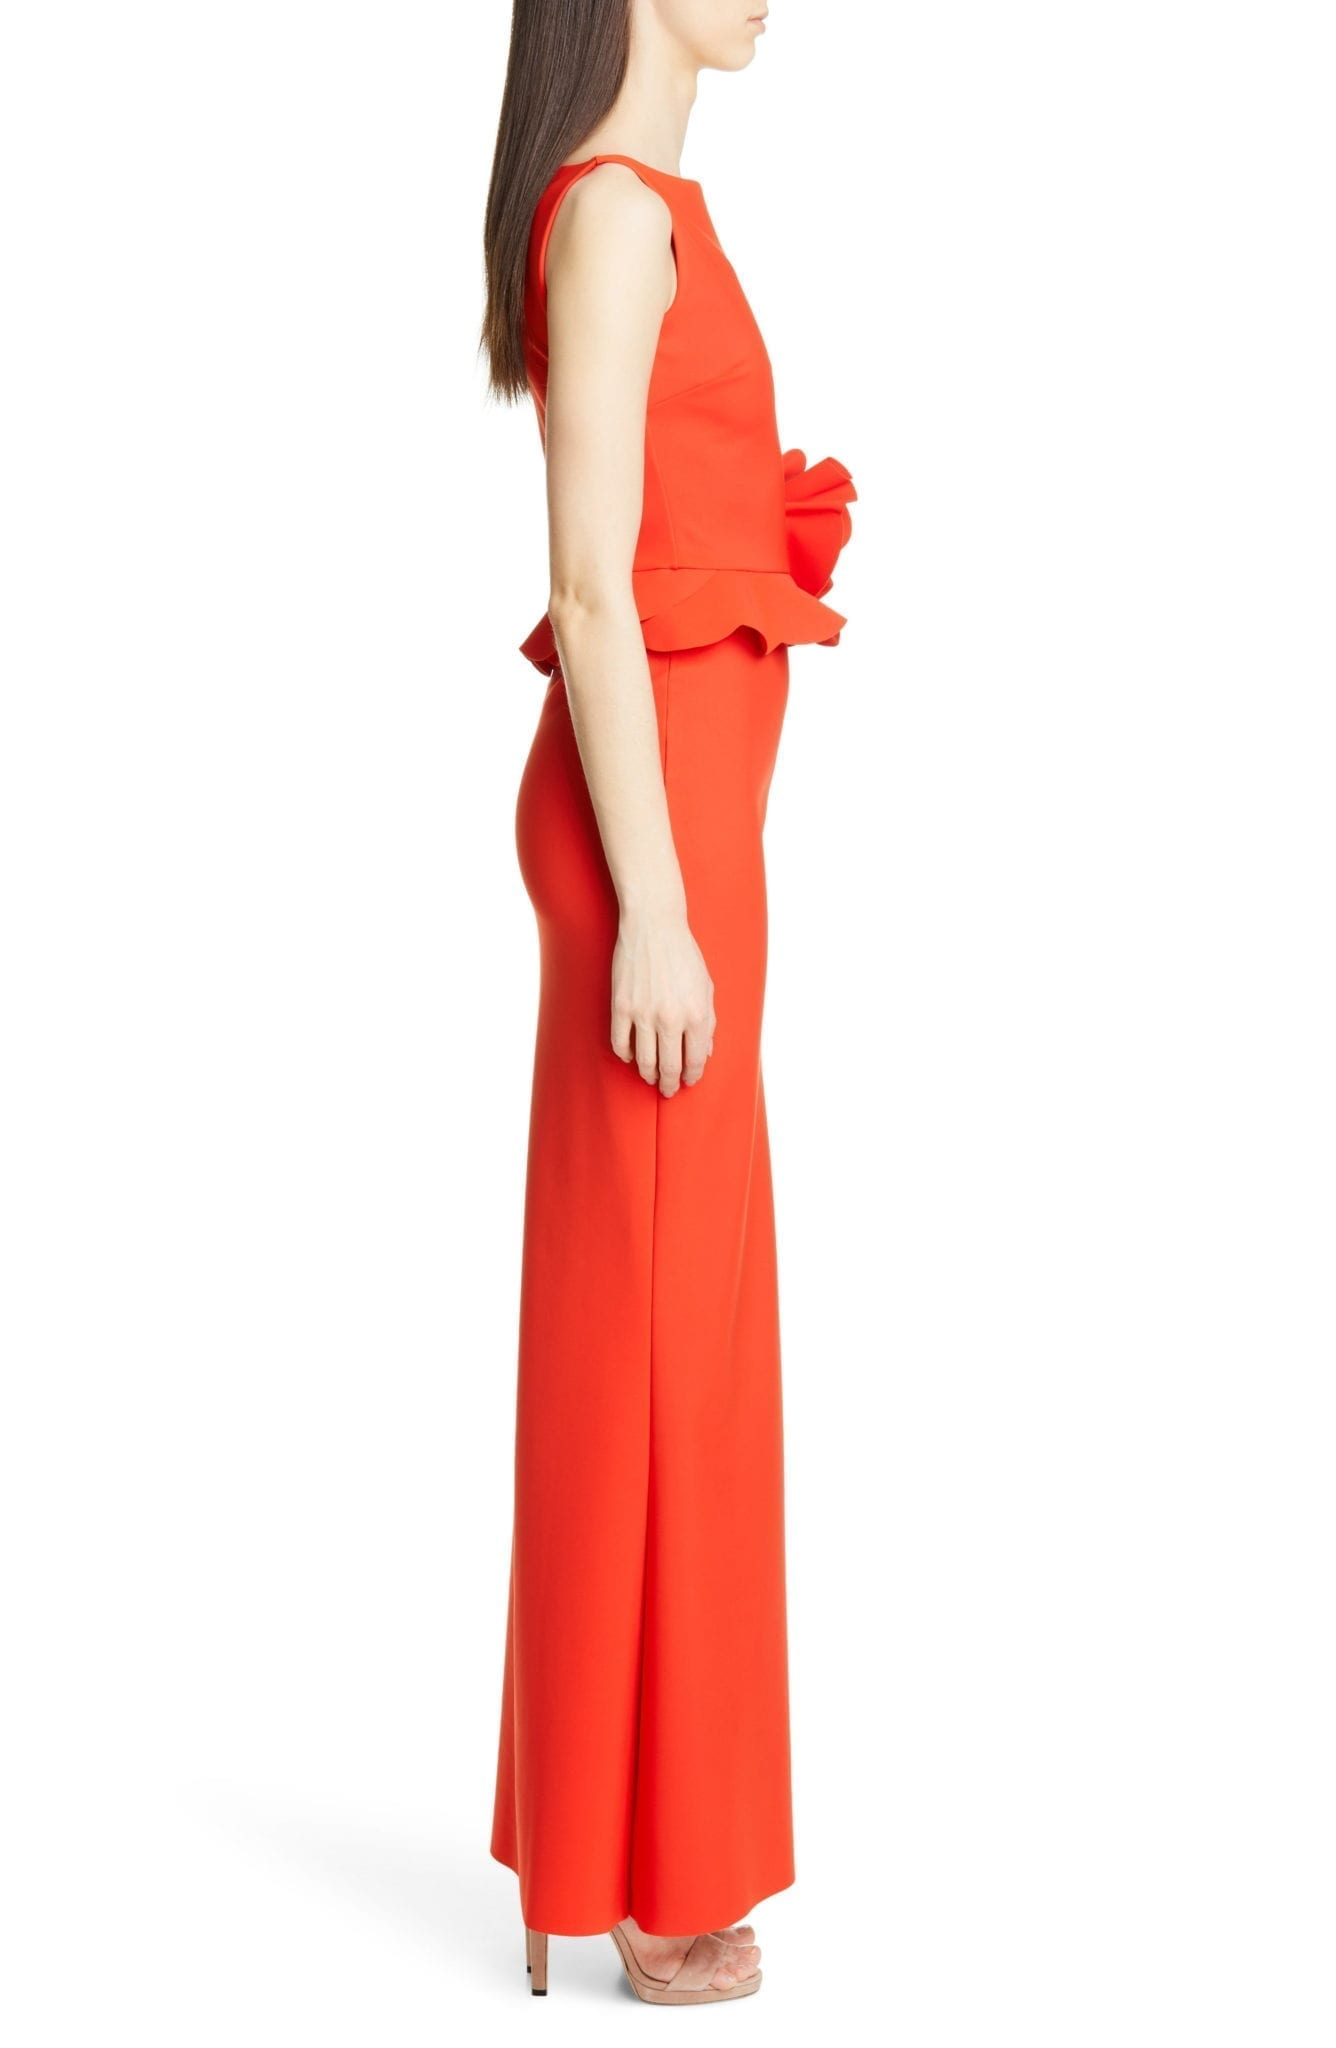 a5a4ced7aa77 CHIARA BONI LA PETITE ROBE Side Ruffle Evening Orange Dress - We ...